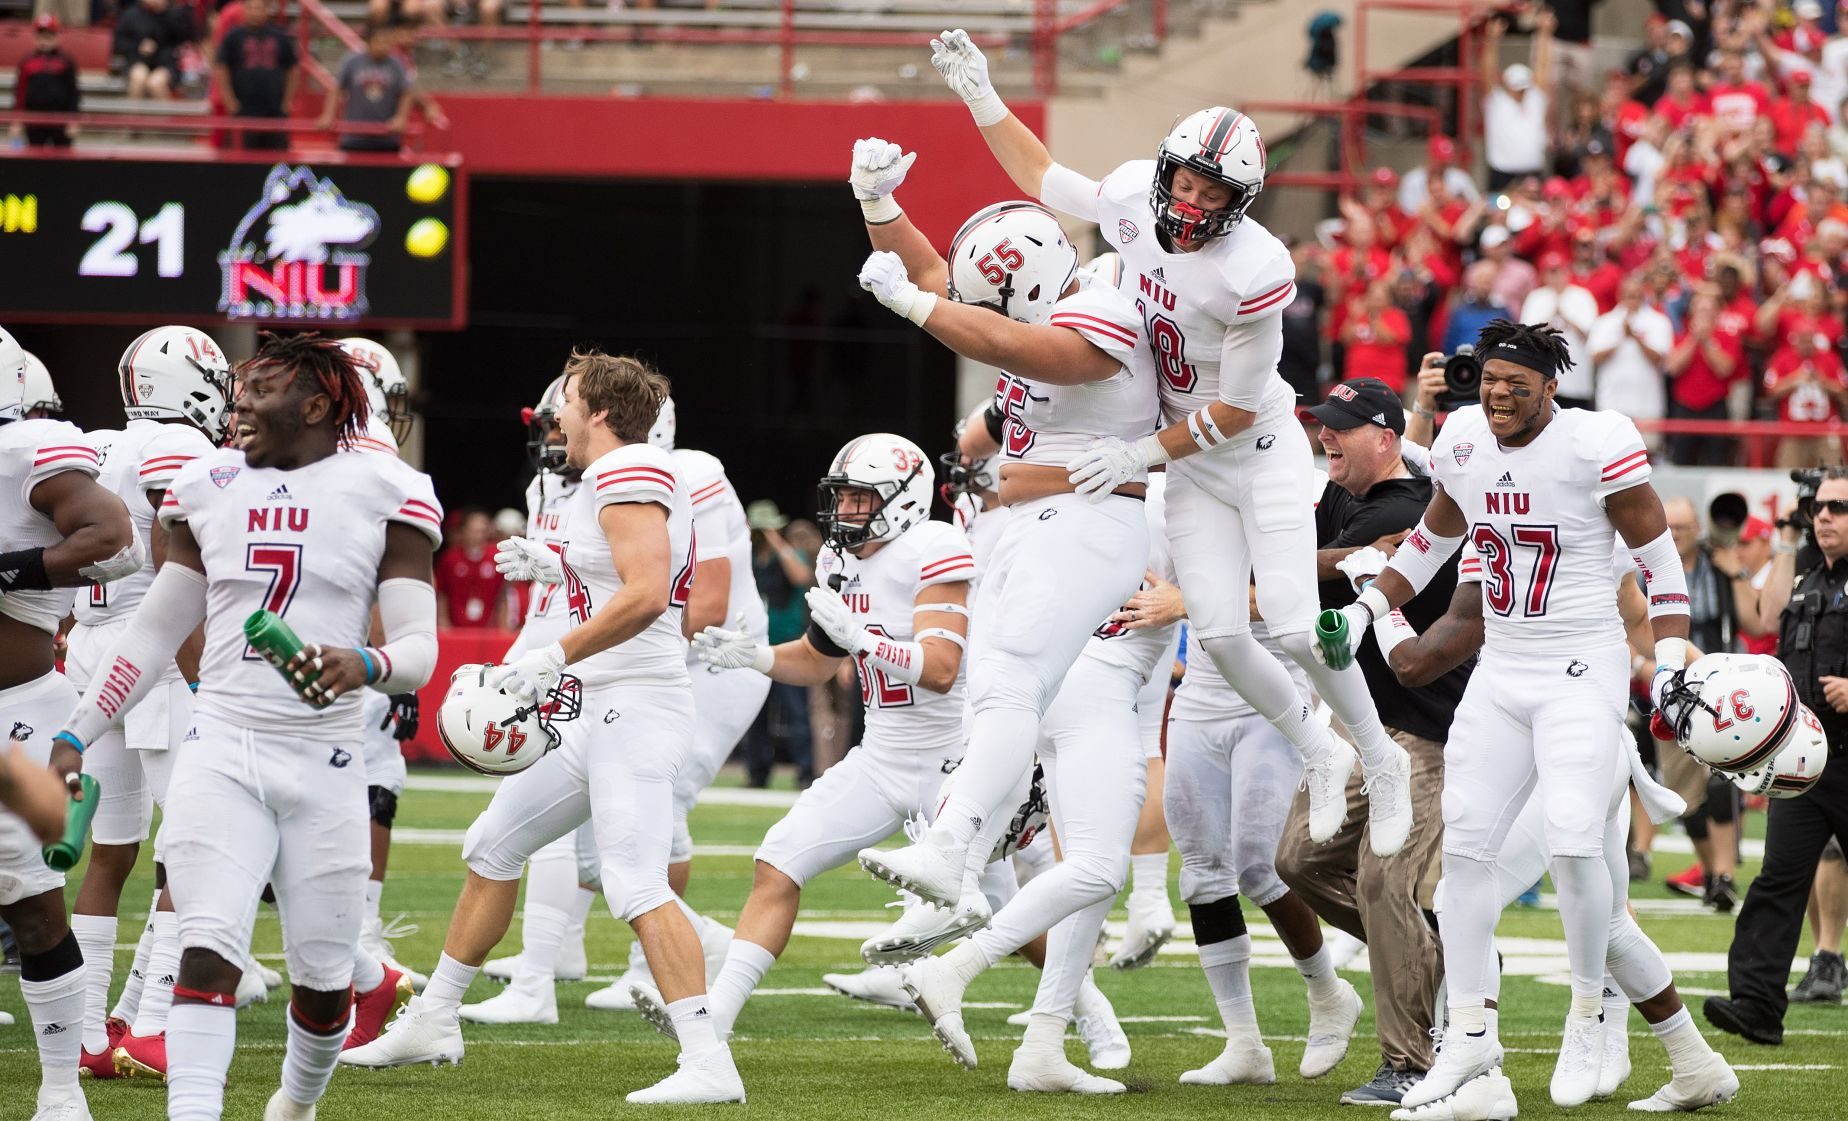 Pregame: Ingredients are there for a Rutgers upset of Nebraska